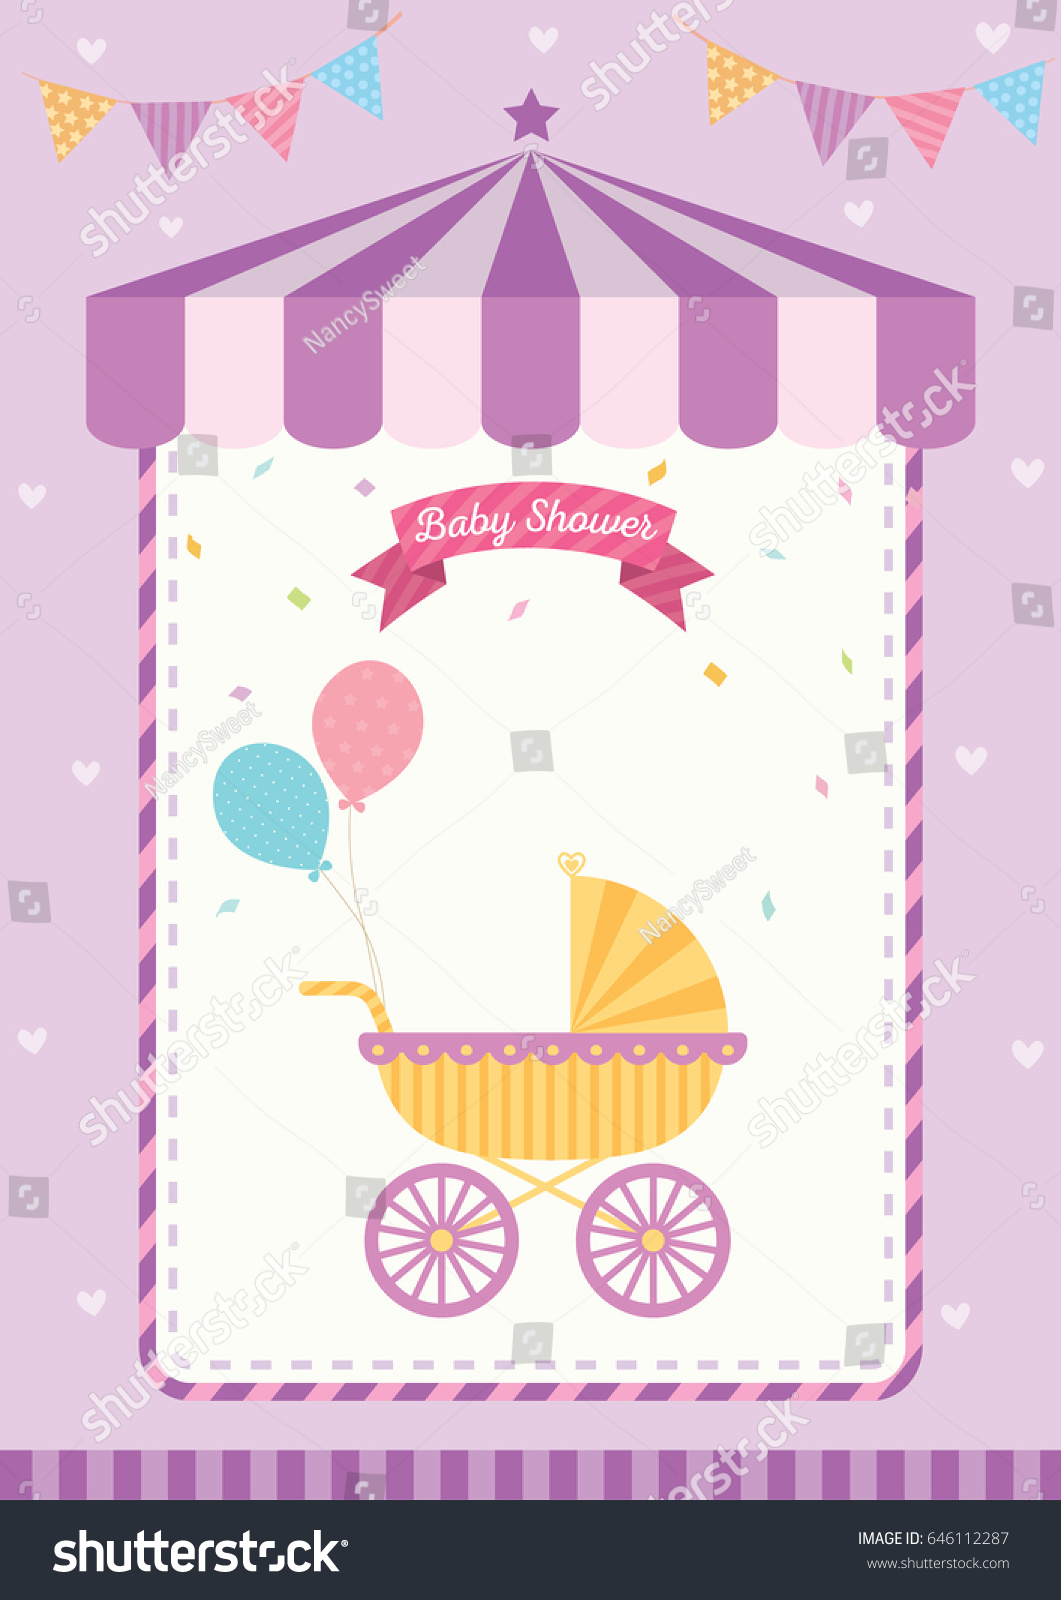 Baby Shower Invitation Cute Template Card Stock Vector 646112287 ...